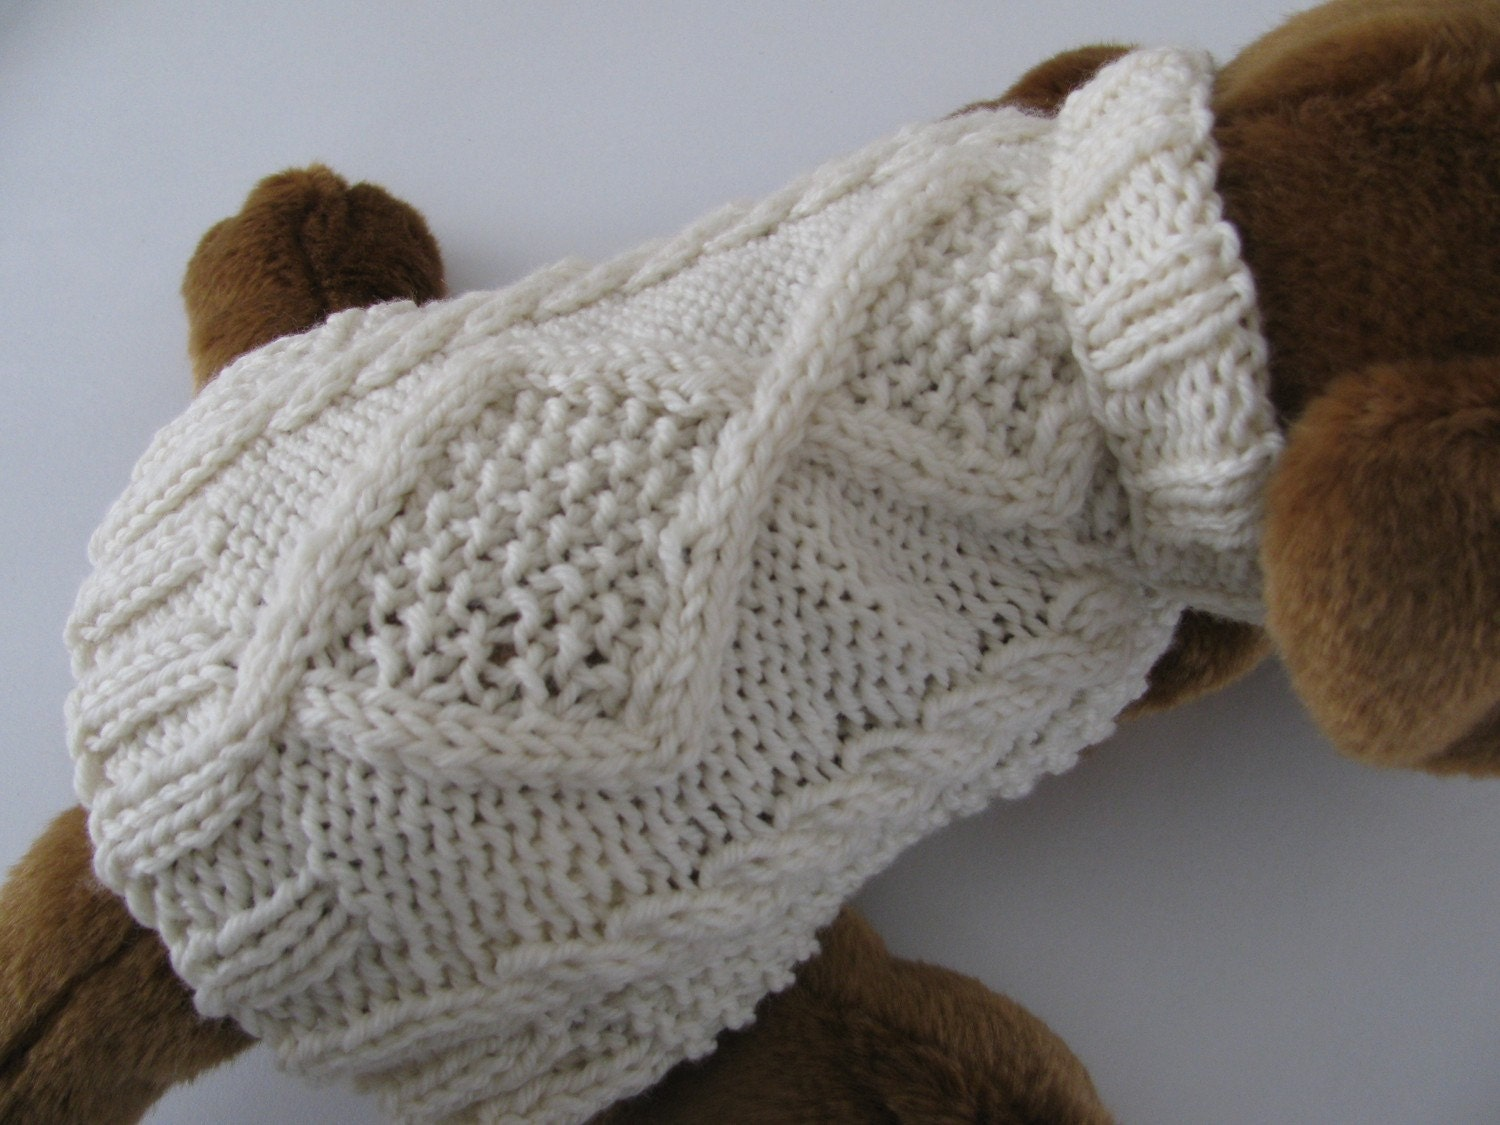 Free Knit Patterns For Dogs : Knitted Dog Sweater Free Pattern